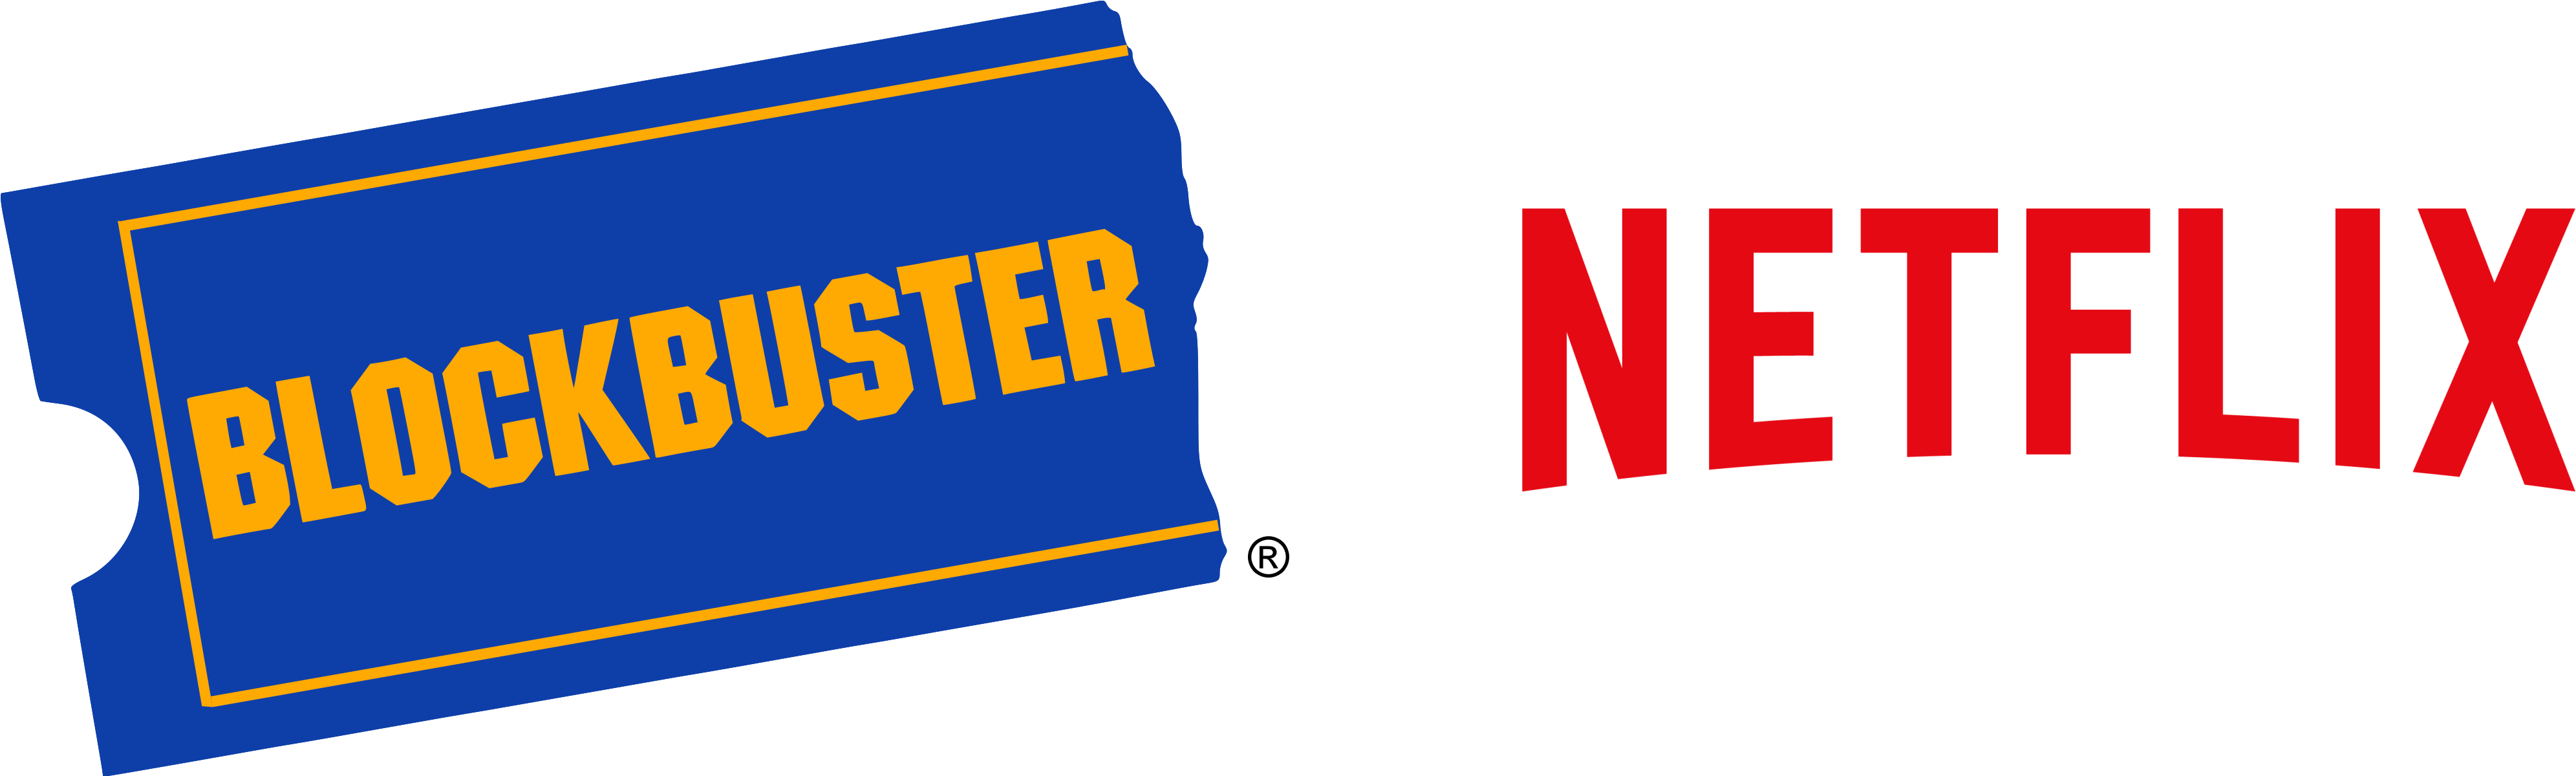 HD Blockbuster Png , Free Unlimited Download #1979194.